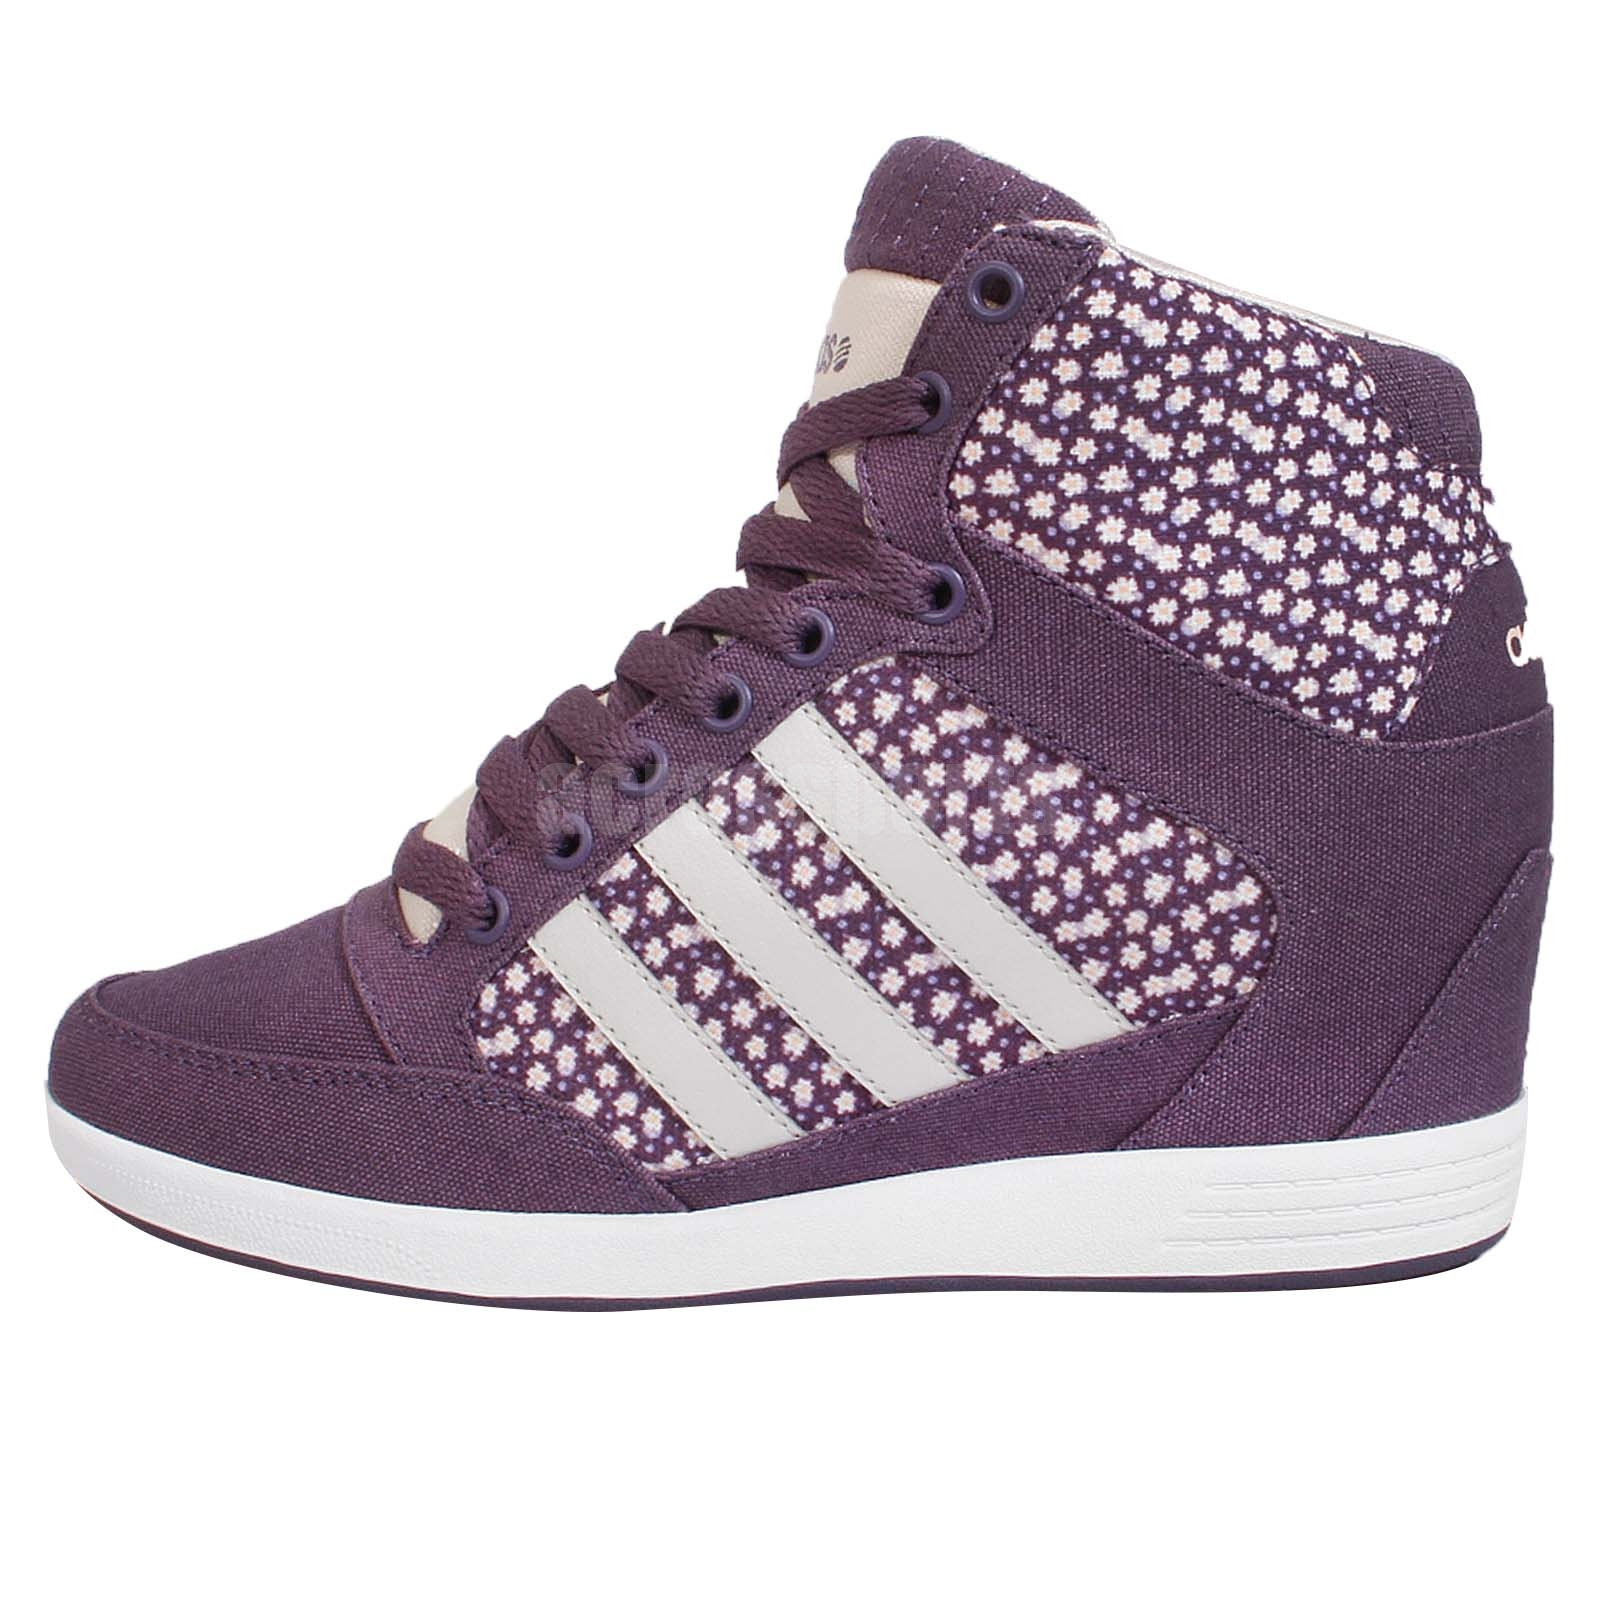 adidas shoes 2016 for girls � grab a job